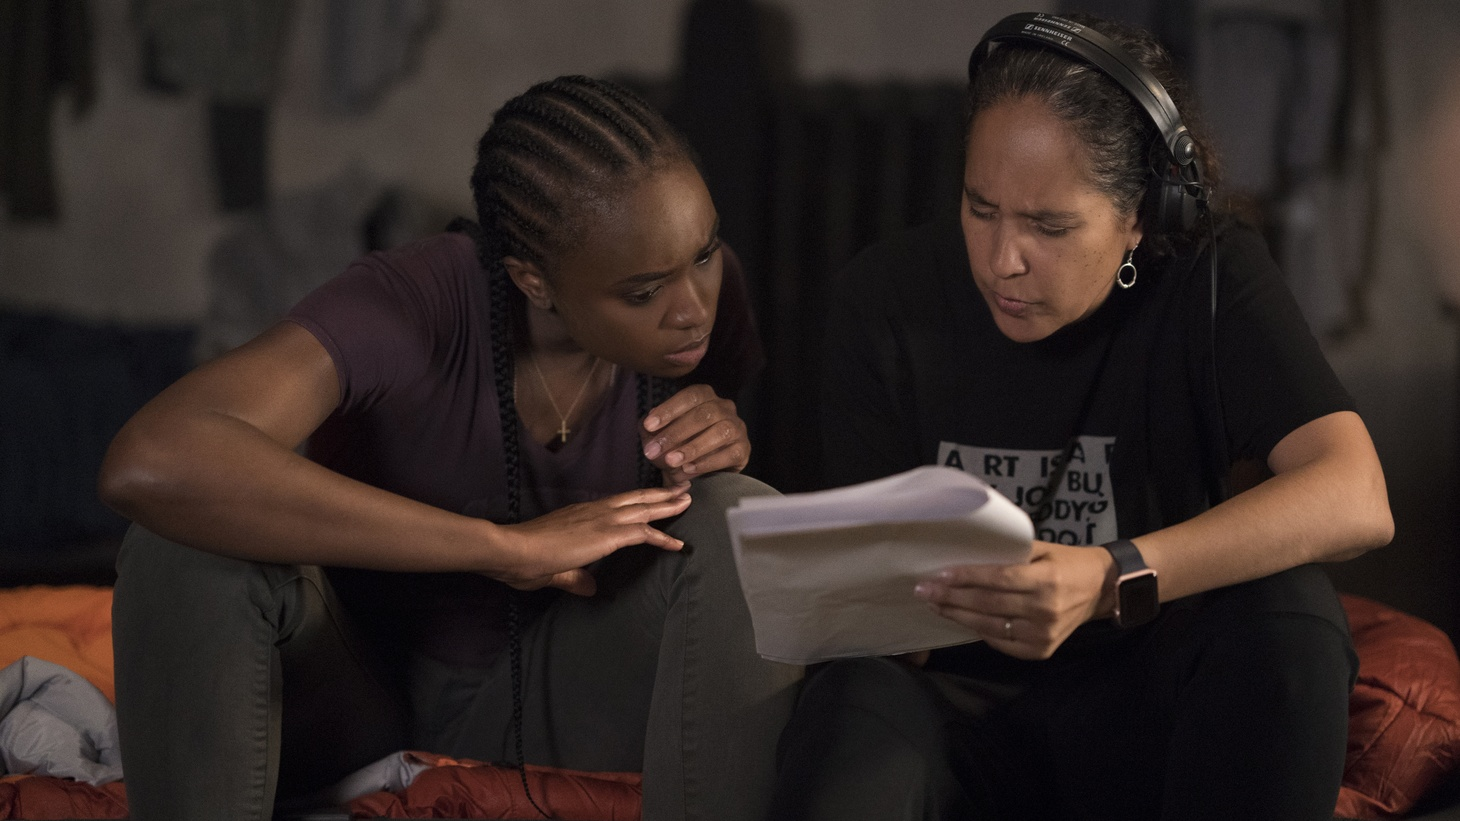 Gina Prince-Bythewood (right) worked with her cast, including Charlize Theron and Kiki Layne (left) to develop the film's intricate fight scenes.